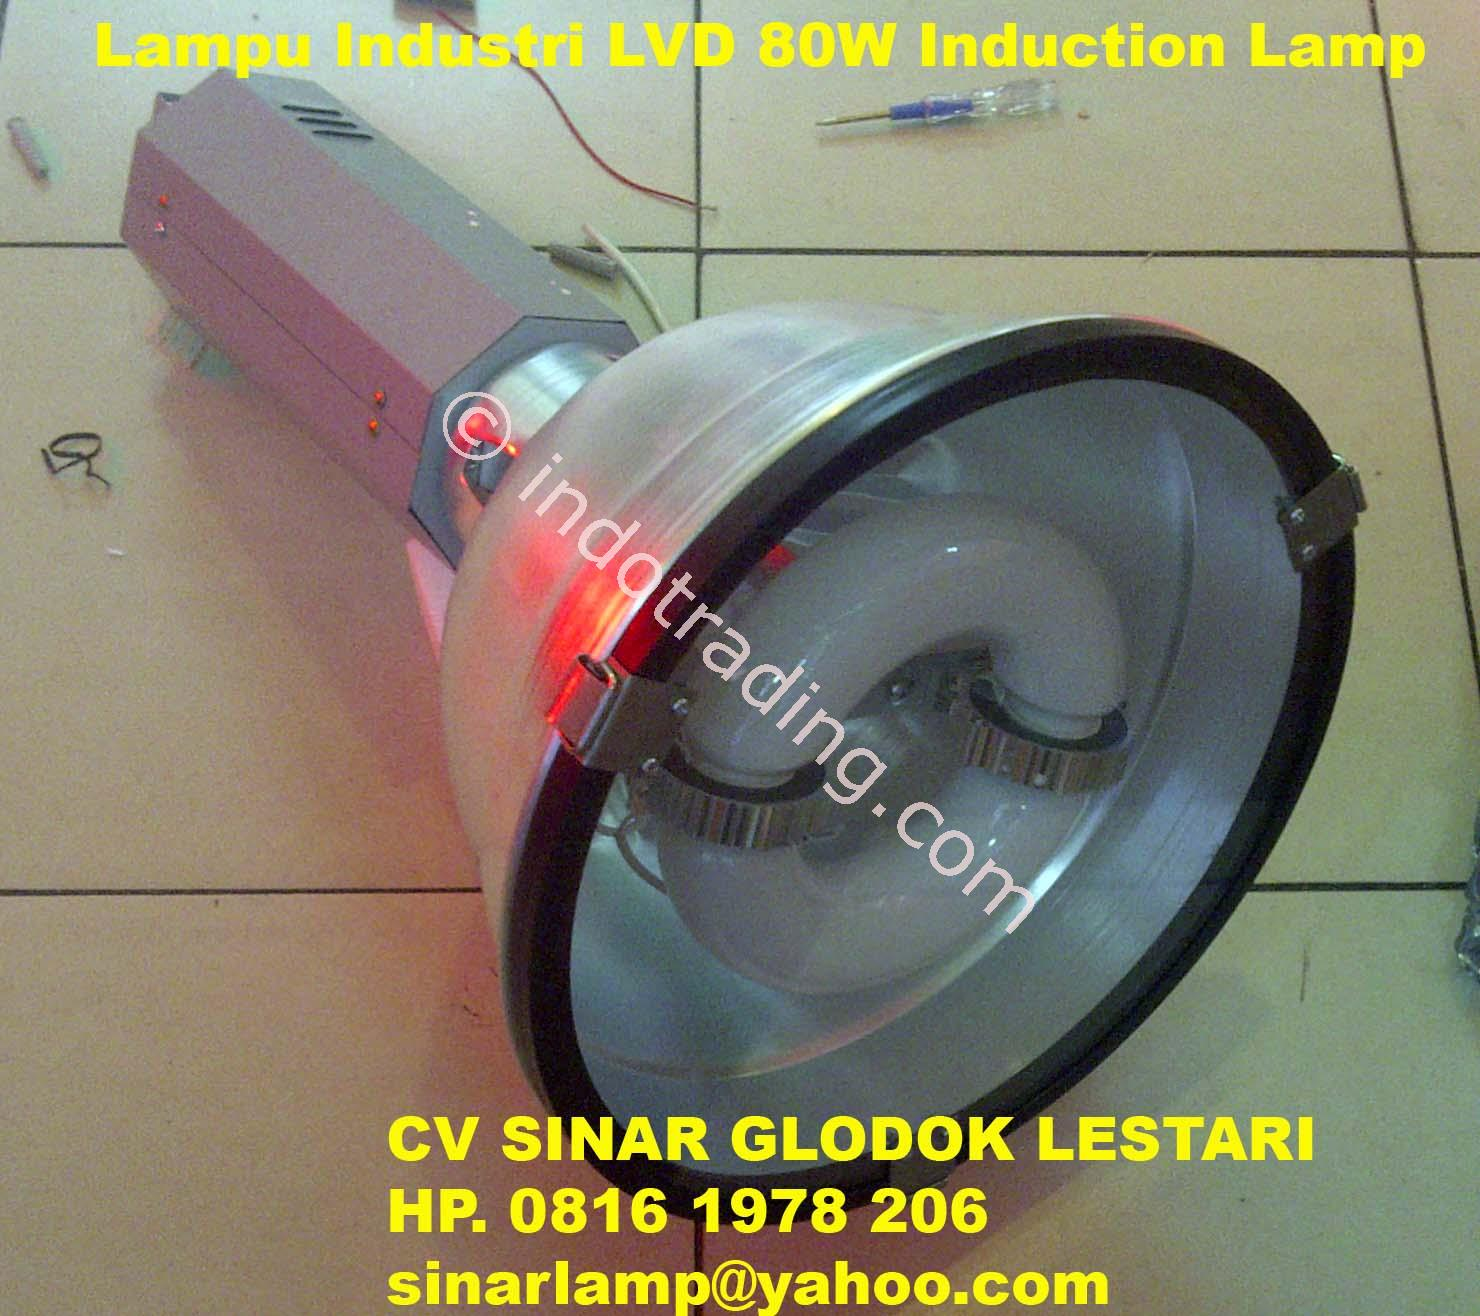 Jual Lampu Industri HDK LVD 80W Tutup Kaca Safety Glass